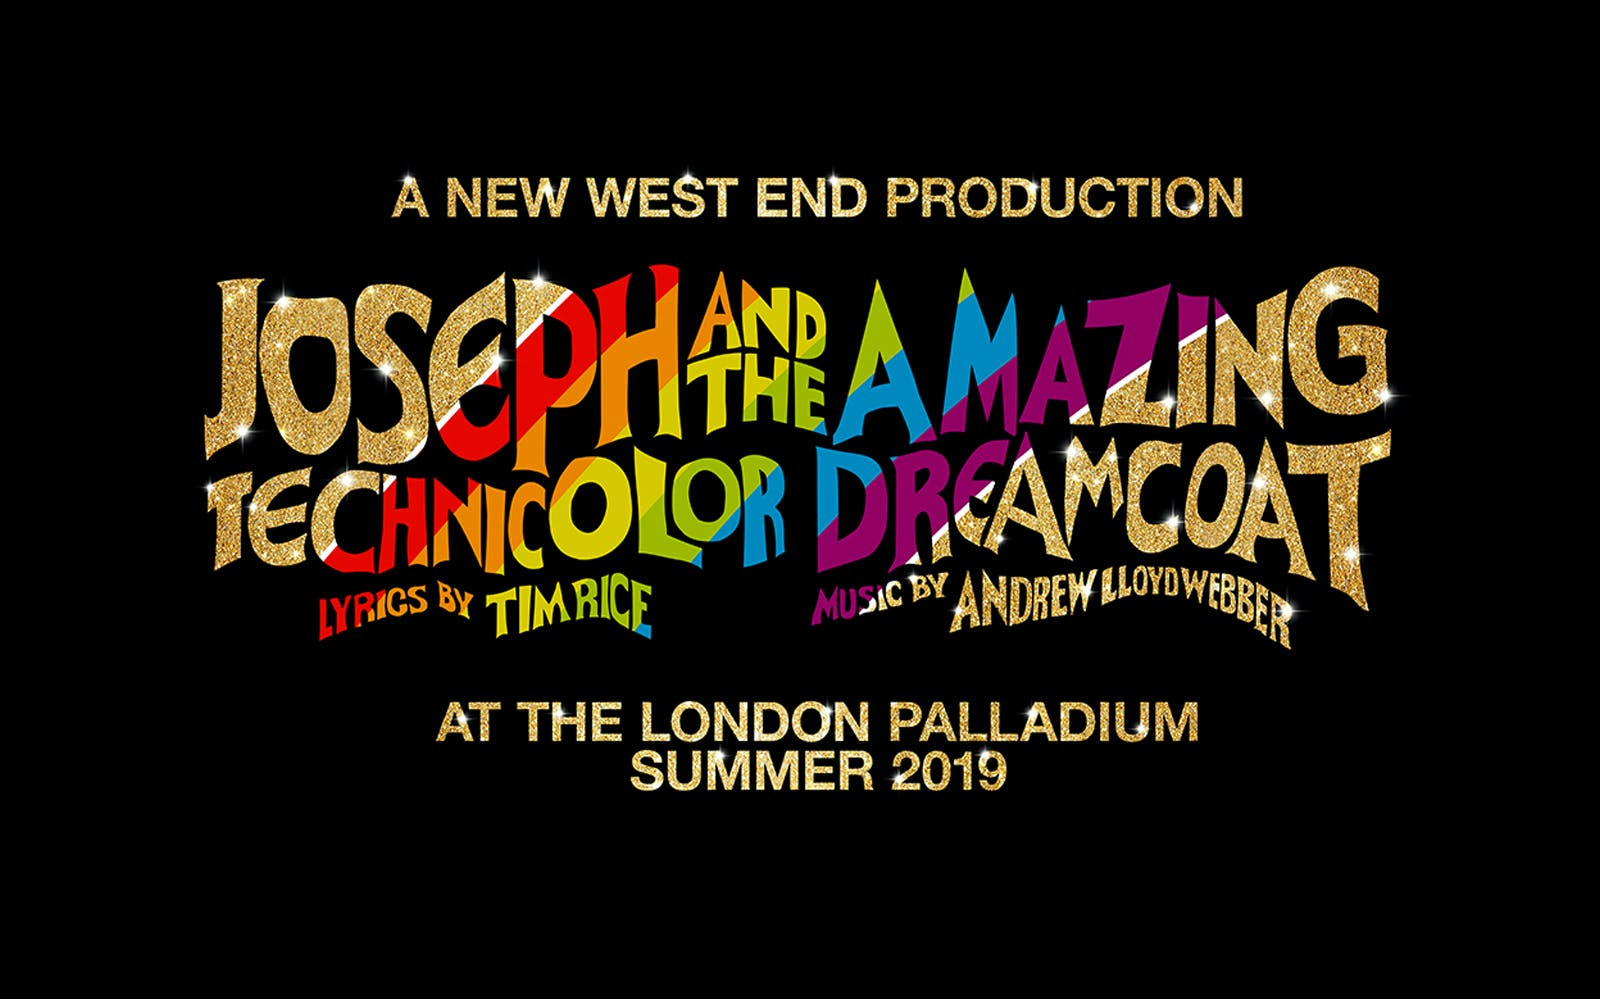 Best West End Shows- Joseph